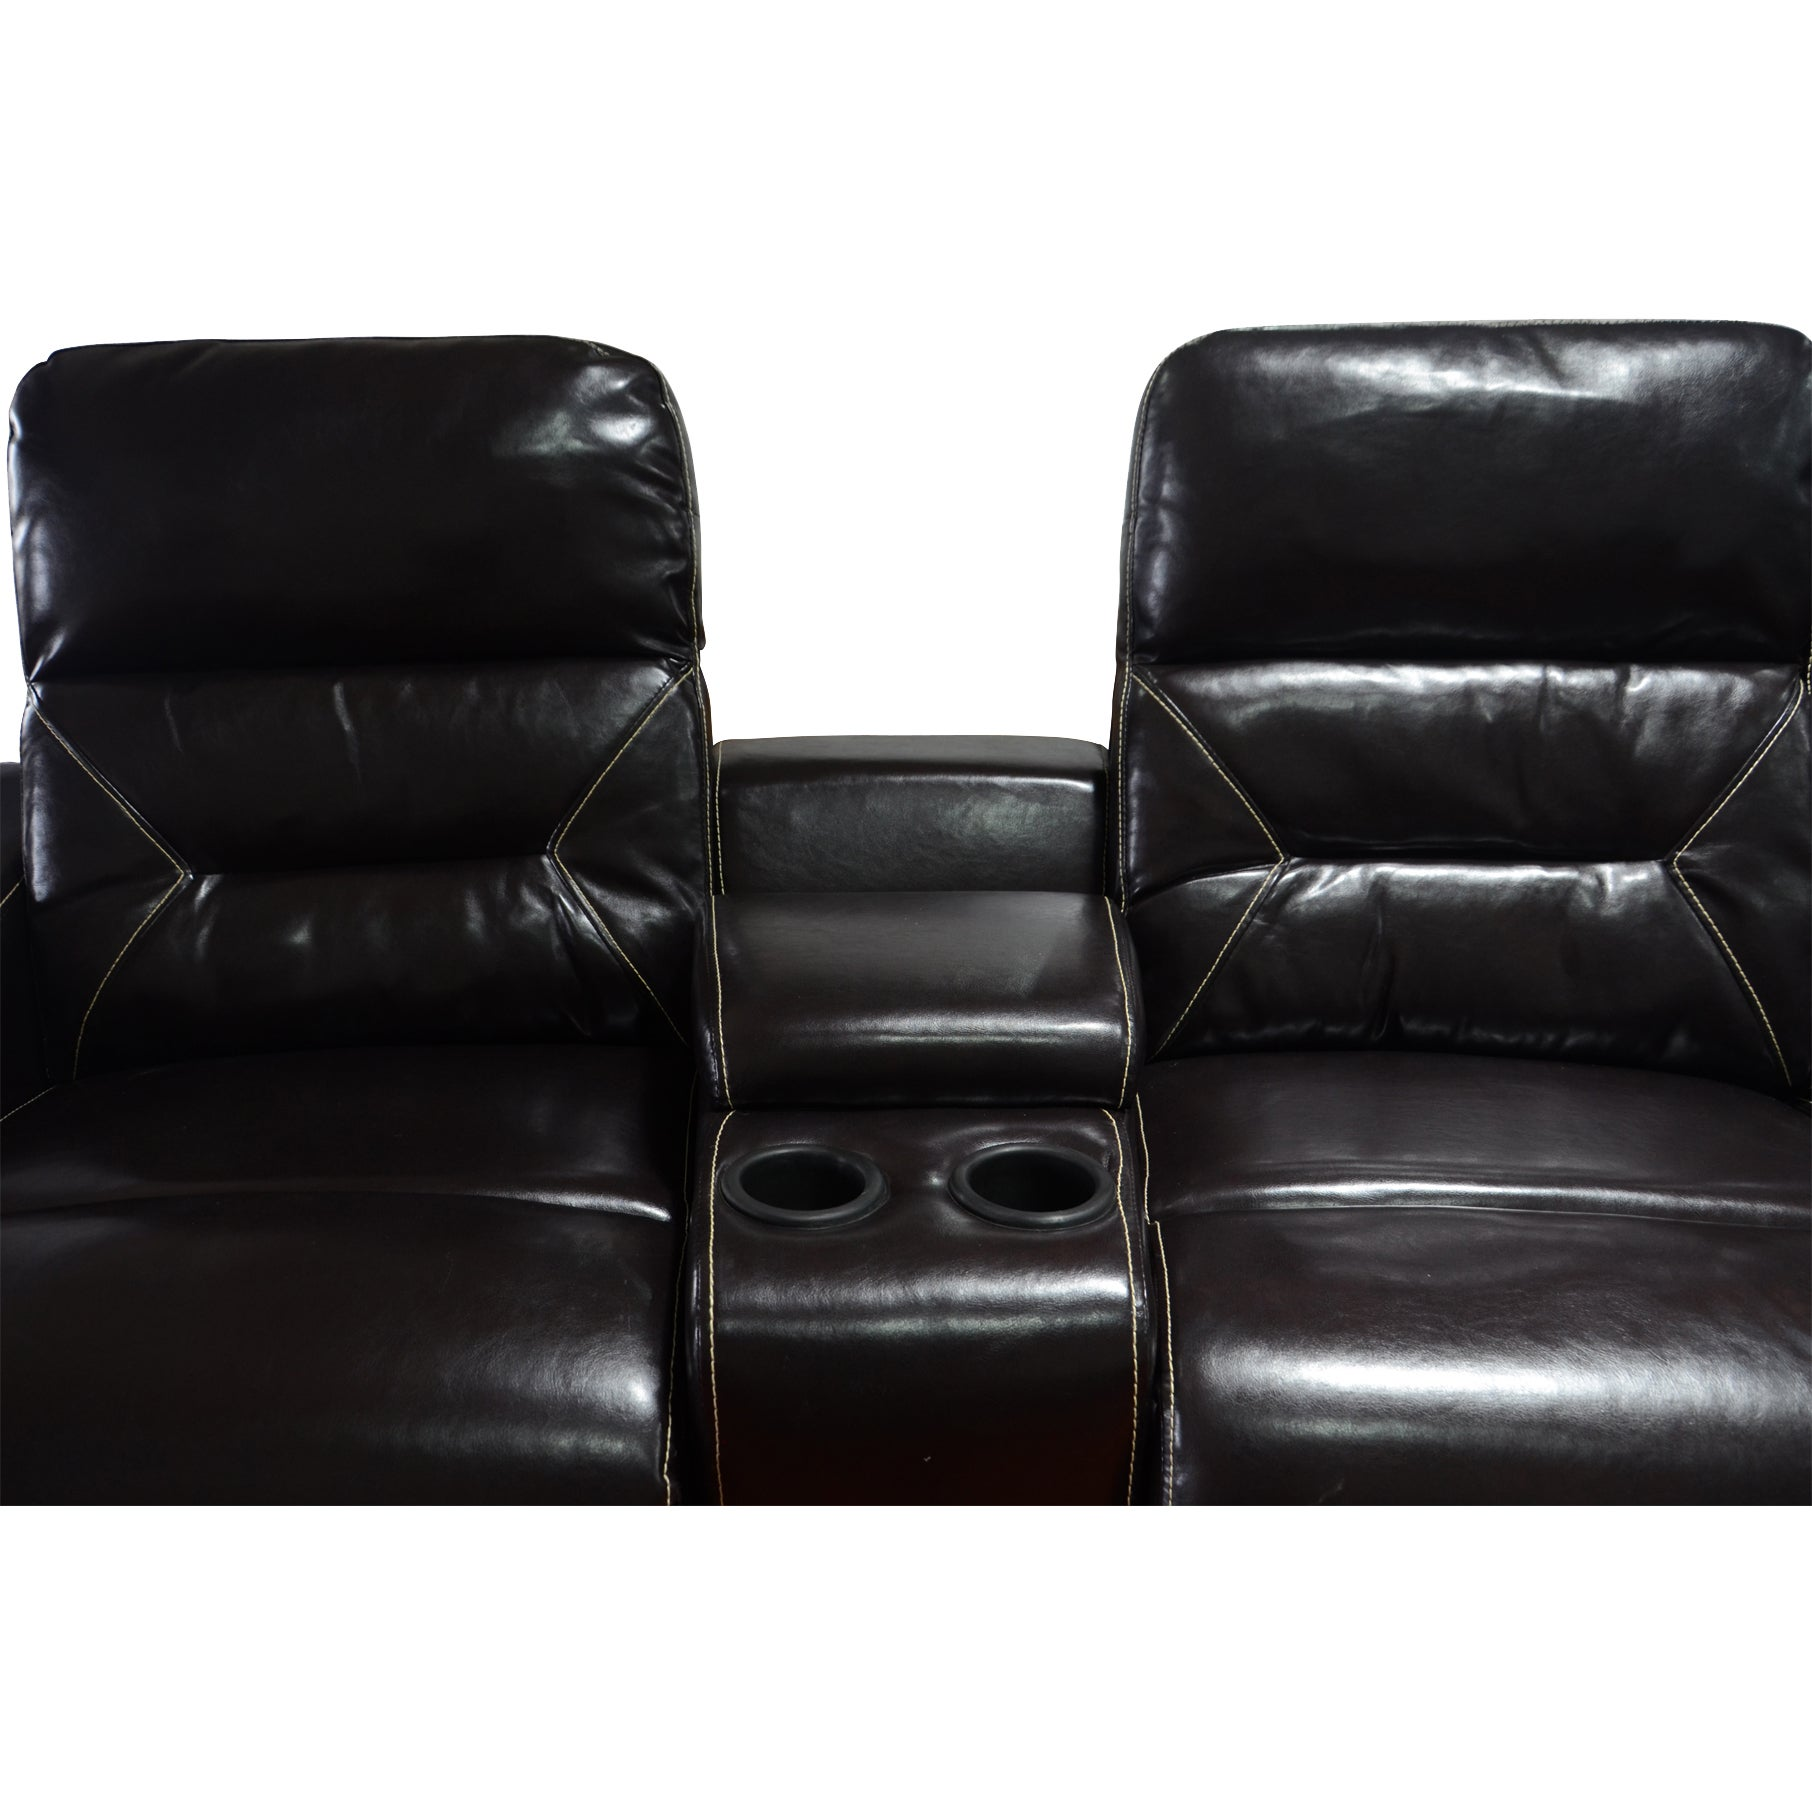 Shop MCombo Faux Leather 4 Seat Home Theater Recliner Sofa   Free Shipping  Today   Overstock.com   14415509